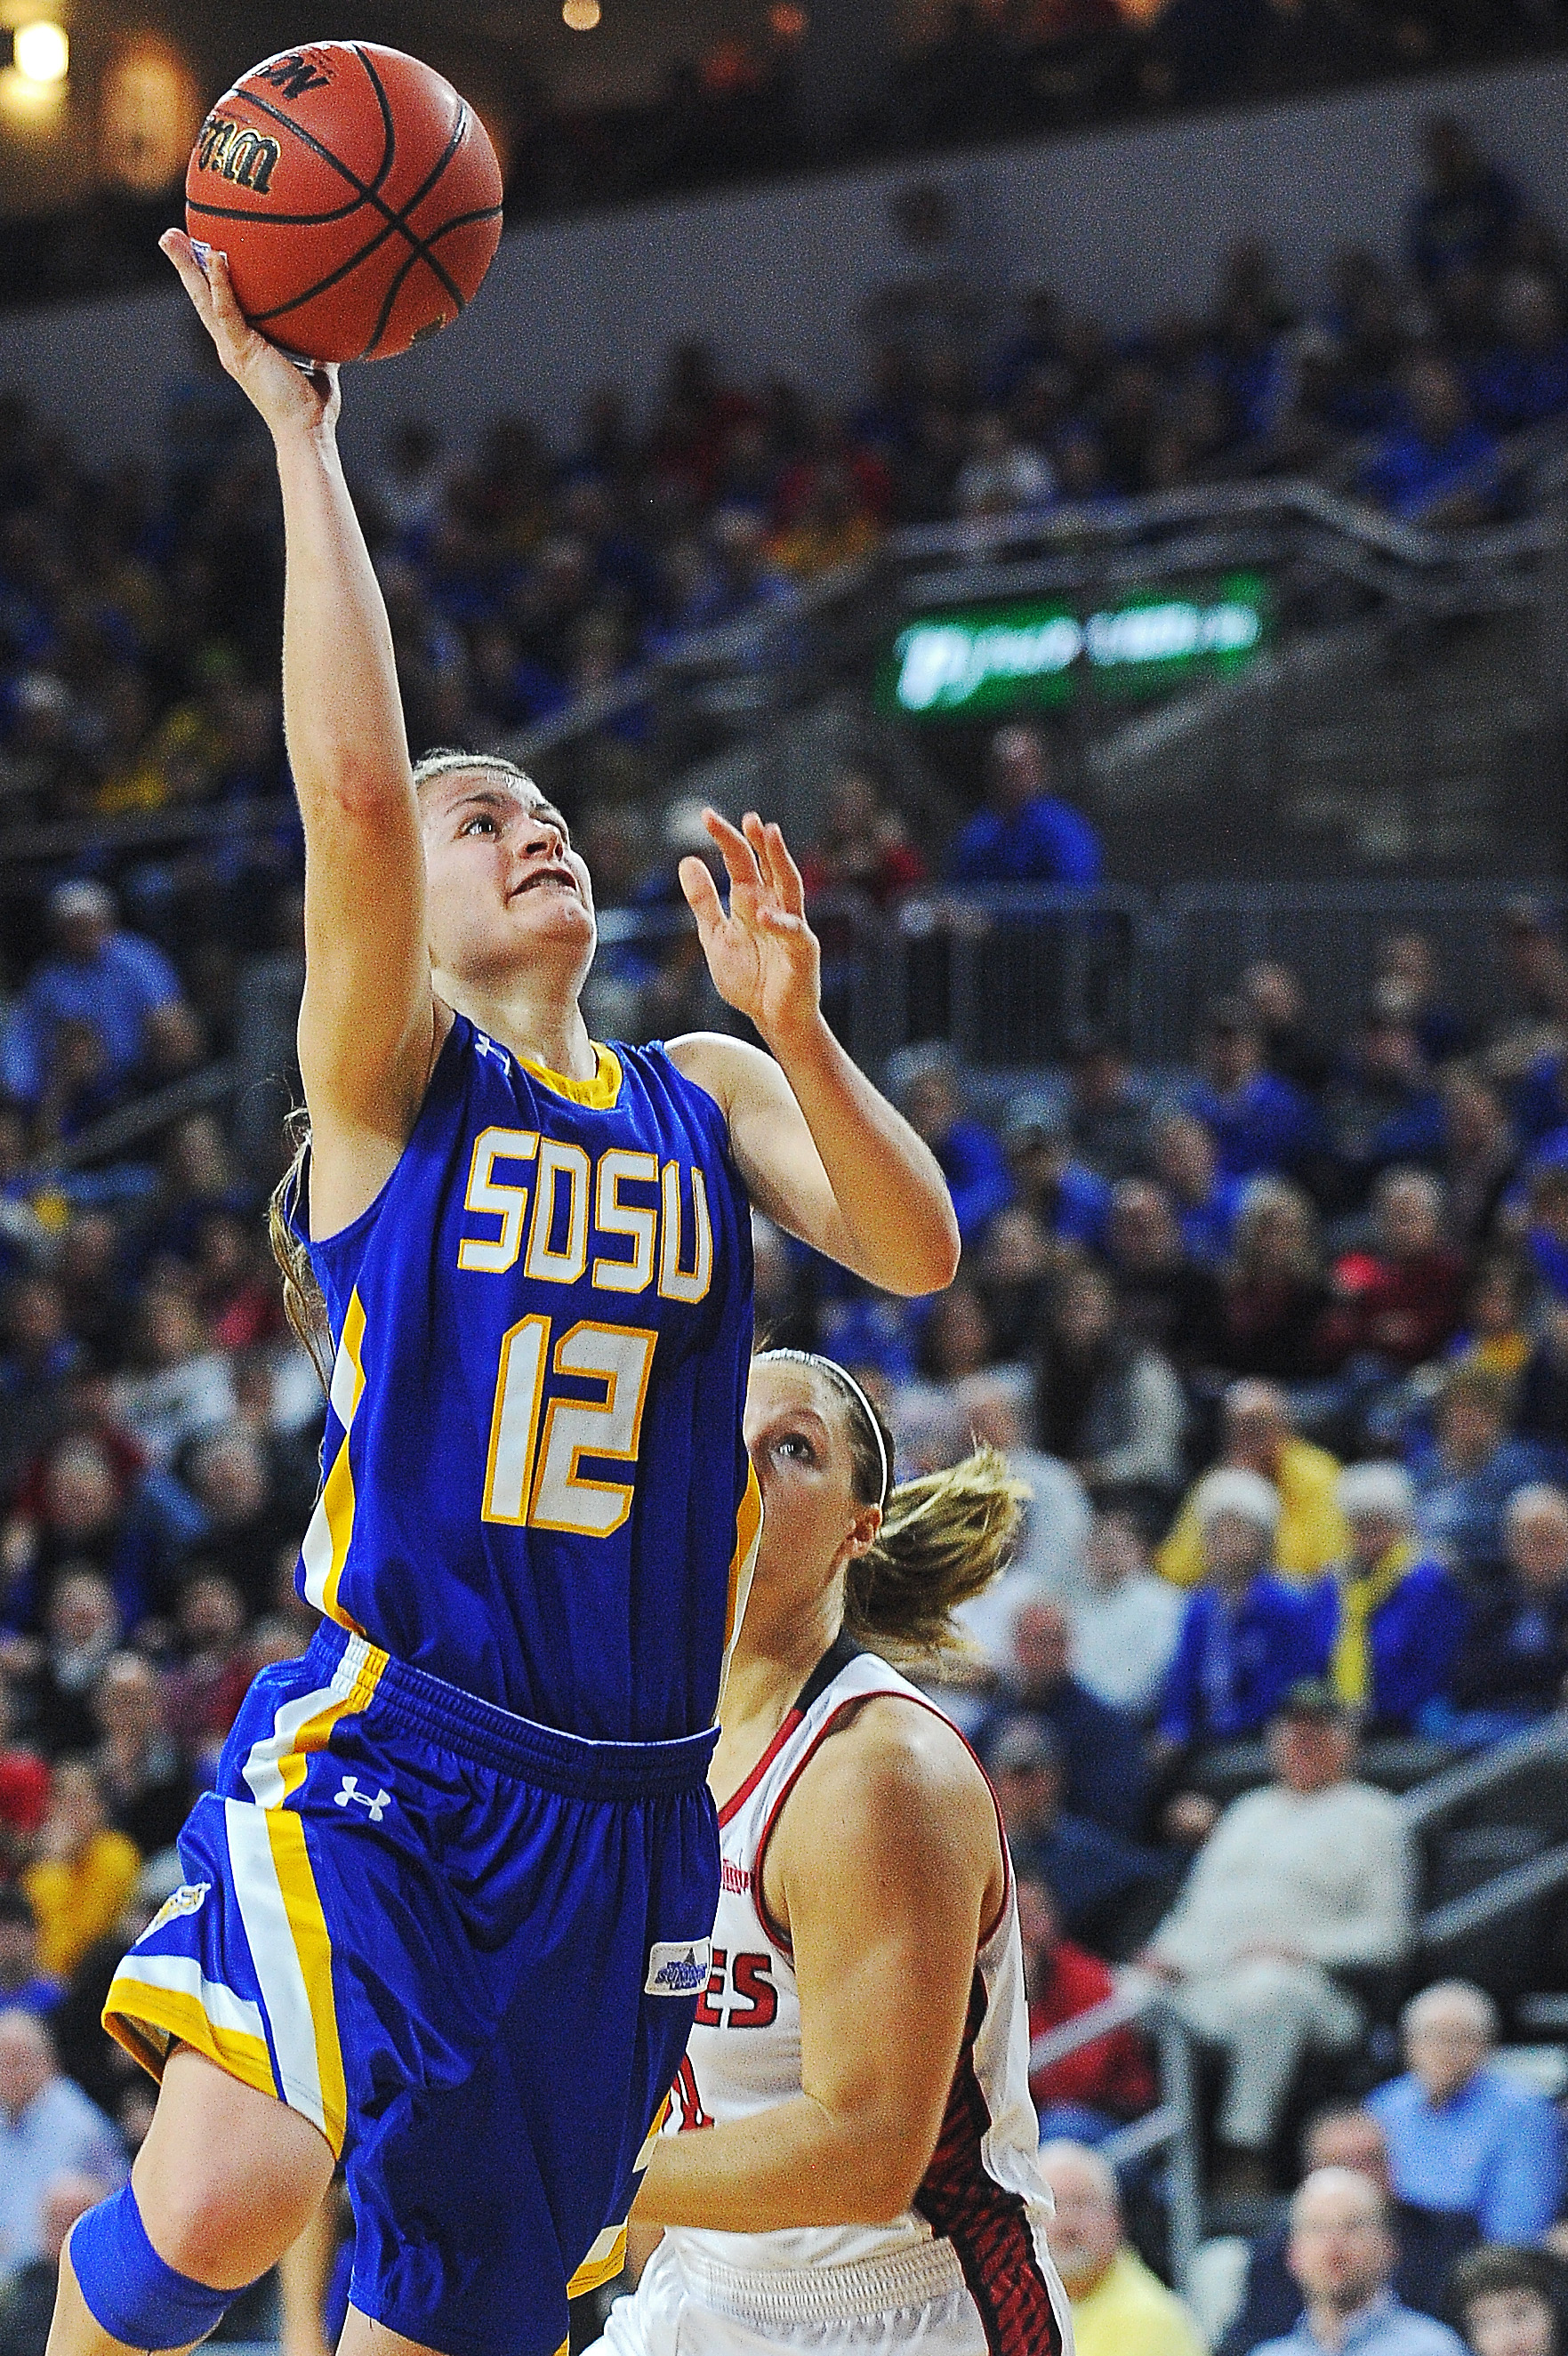 South Dakota State's Macy Miller (12) goes up for a shot in front of South Dakota's Margaret McCloud (30) during the Summit League championship NCAA college basketball game, Tuesday, March 8, 2016, at the Denny Sanford Premier Center in Sioux Falls, S.D.